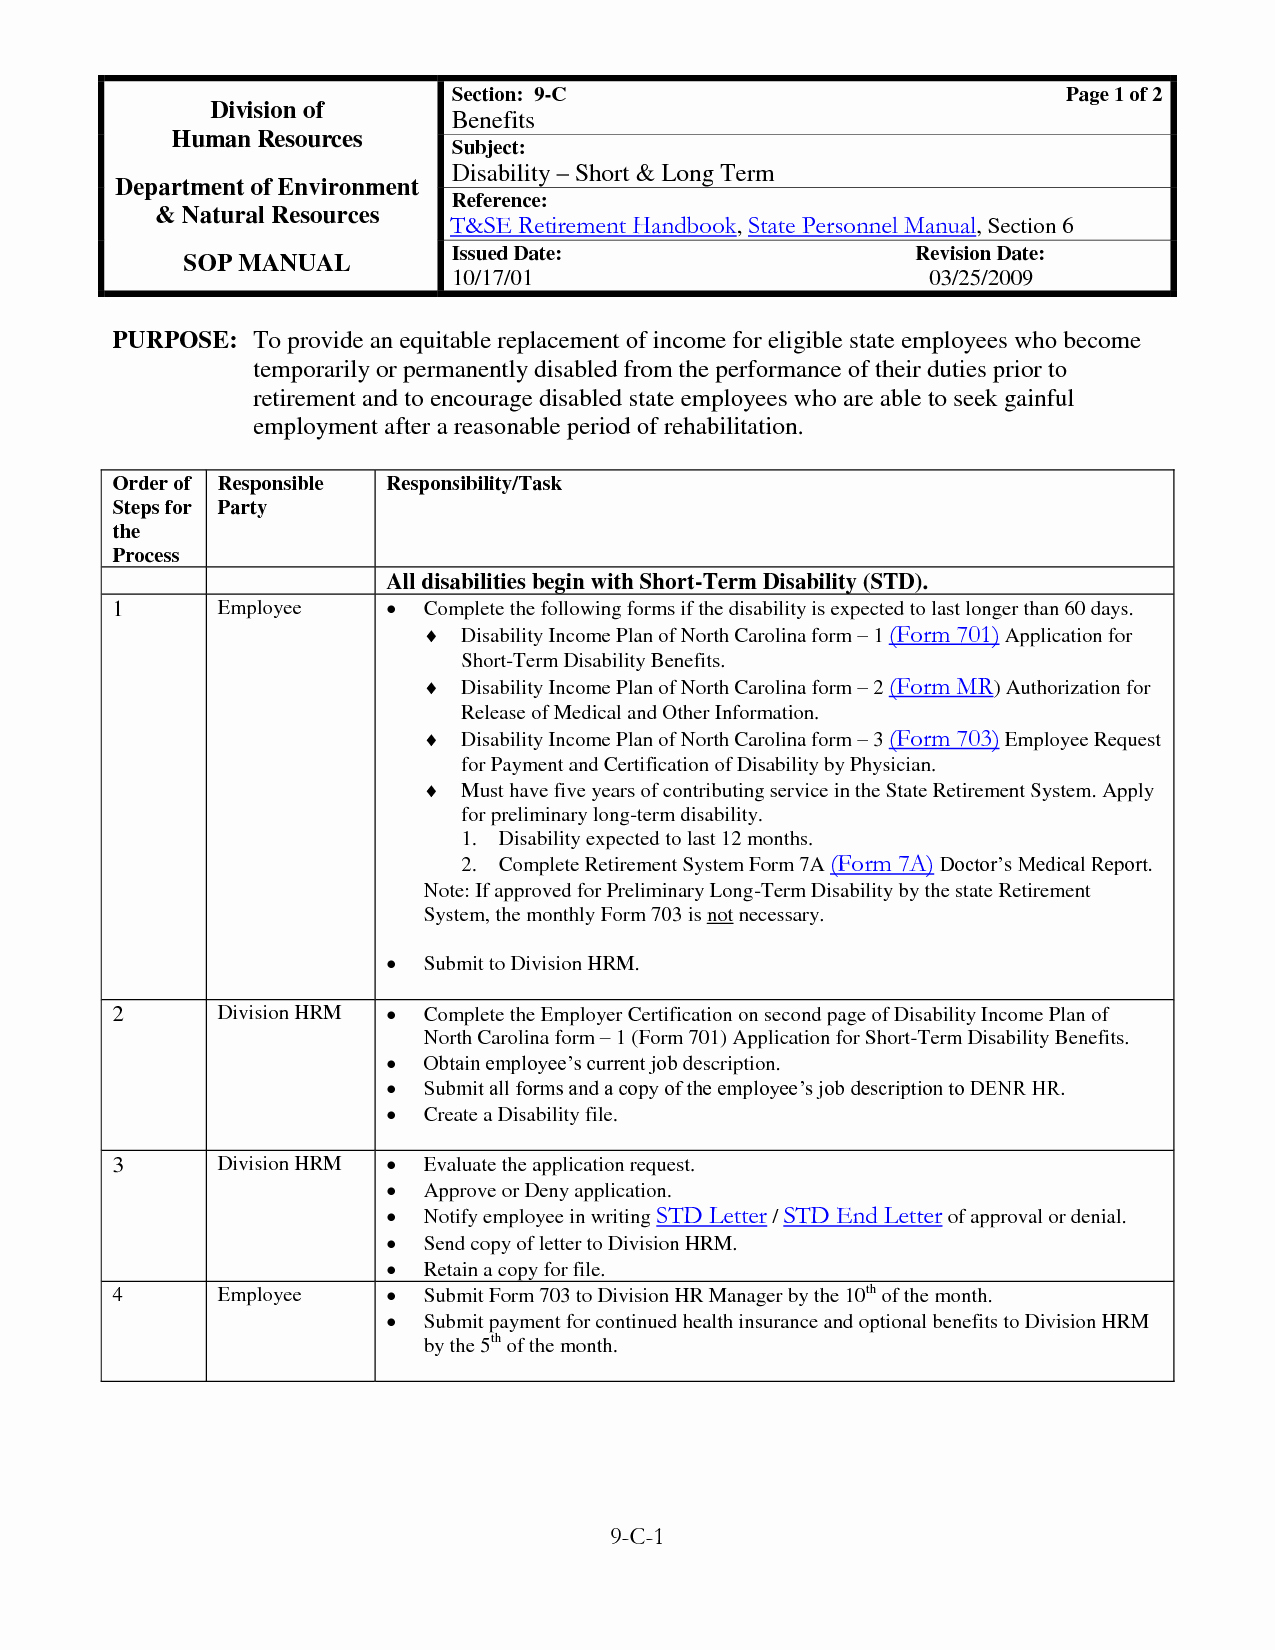 Procedure Manual Template Word Best Of Simple Procedures Manual Template – Teplates for Every Day